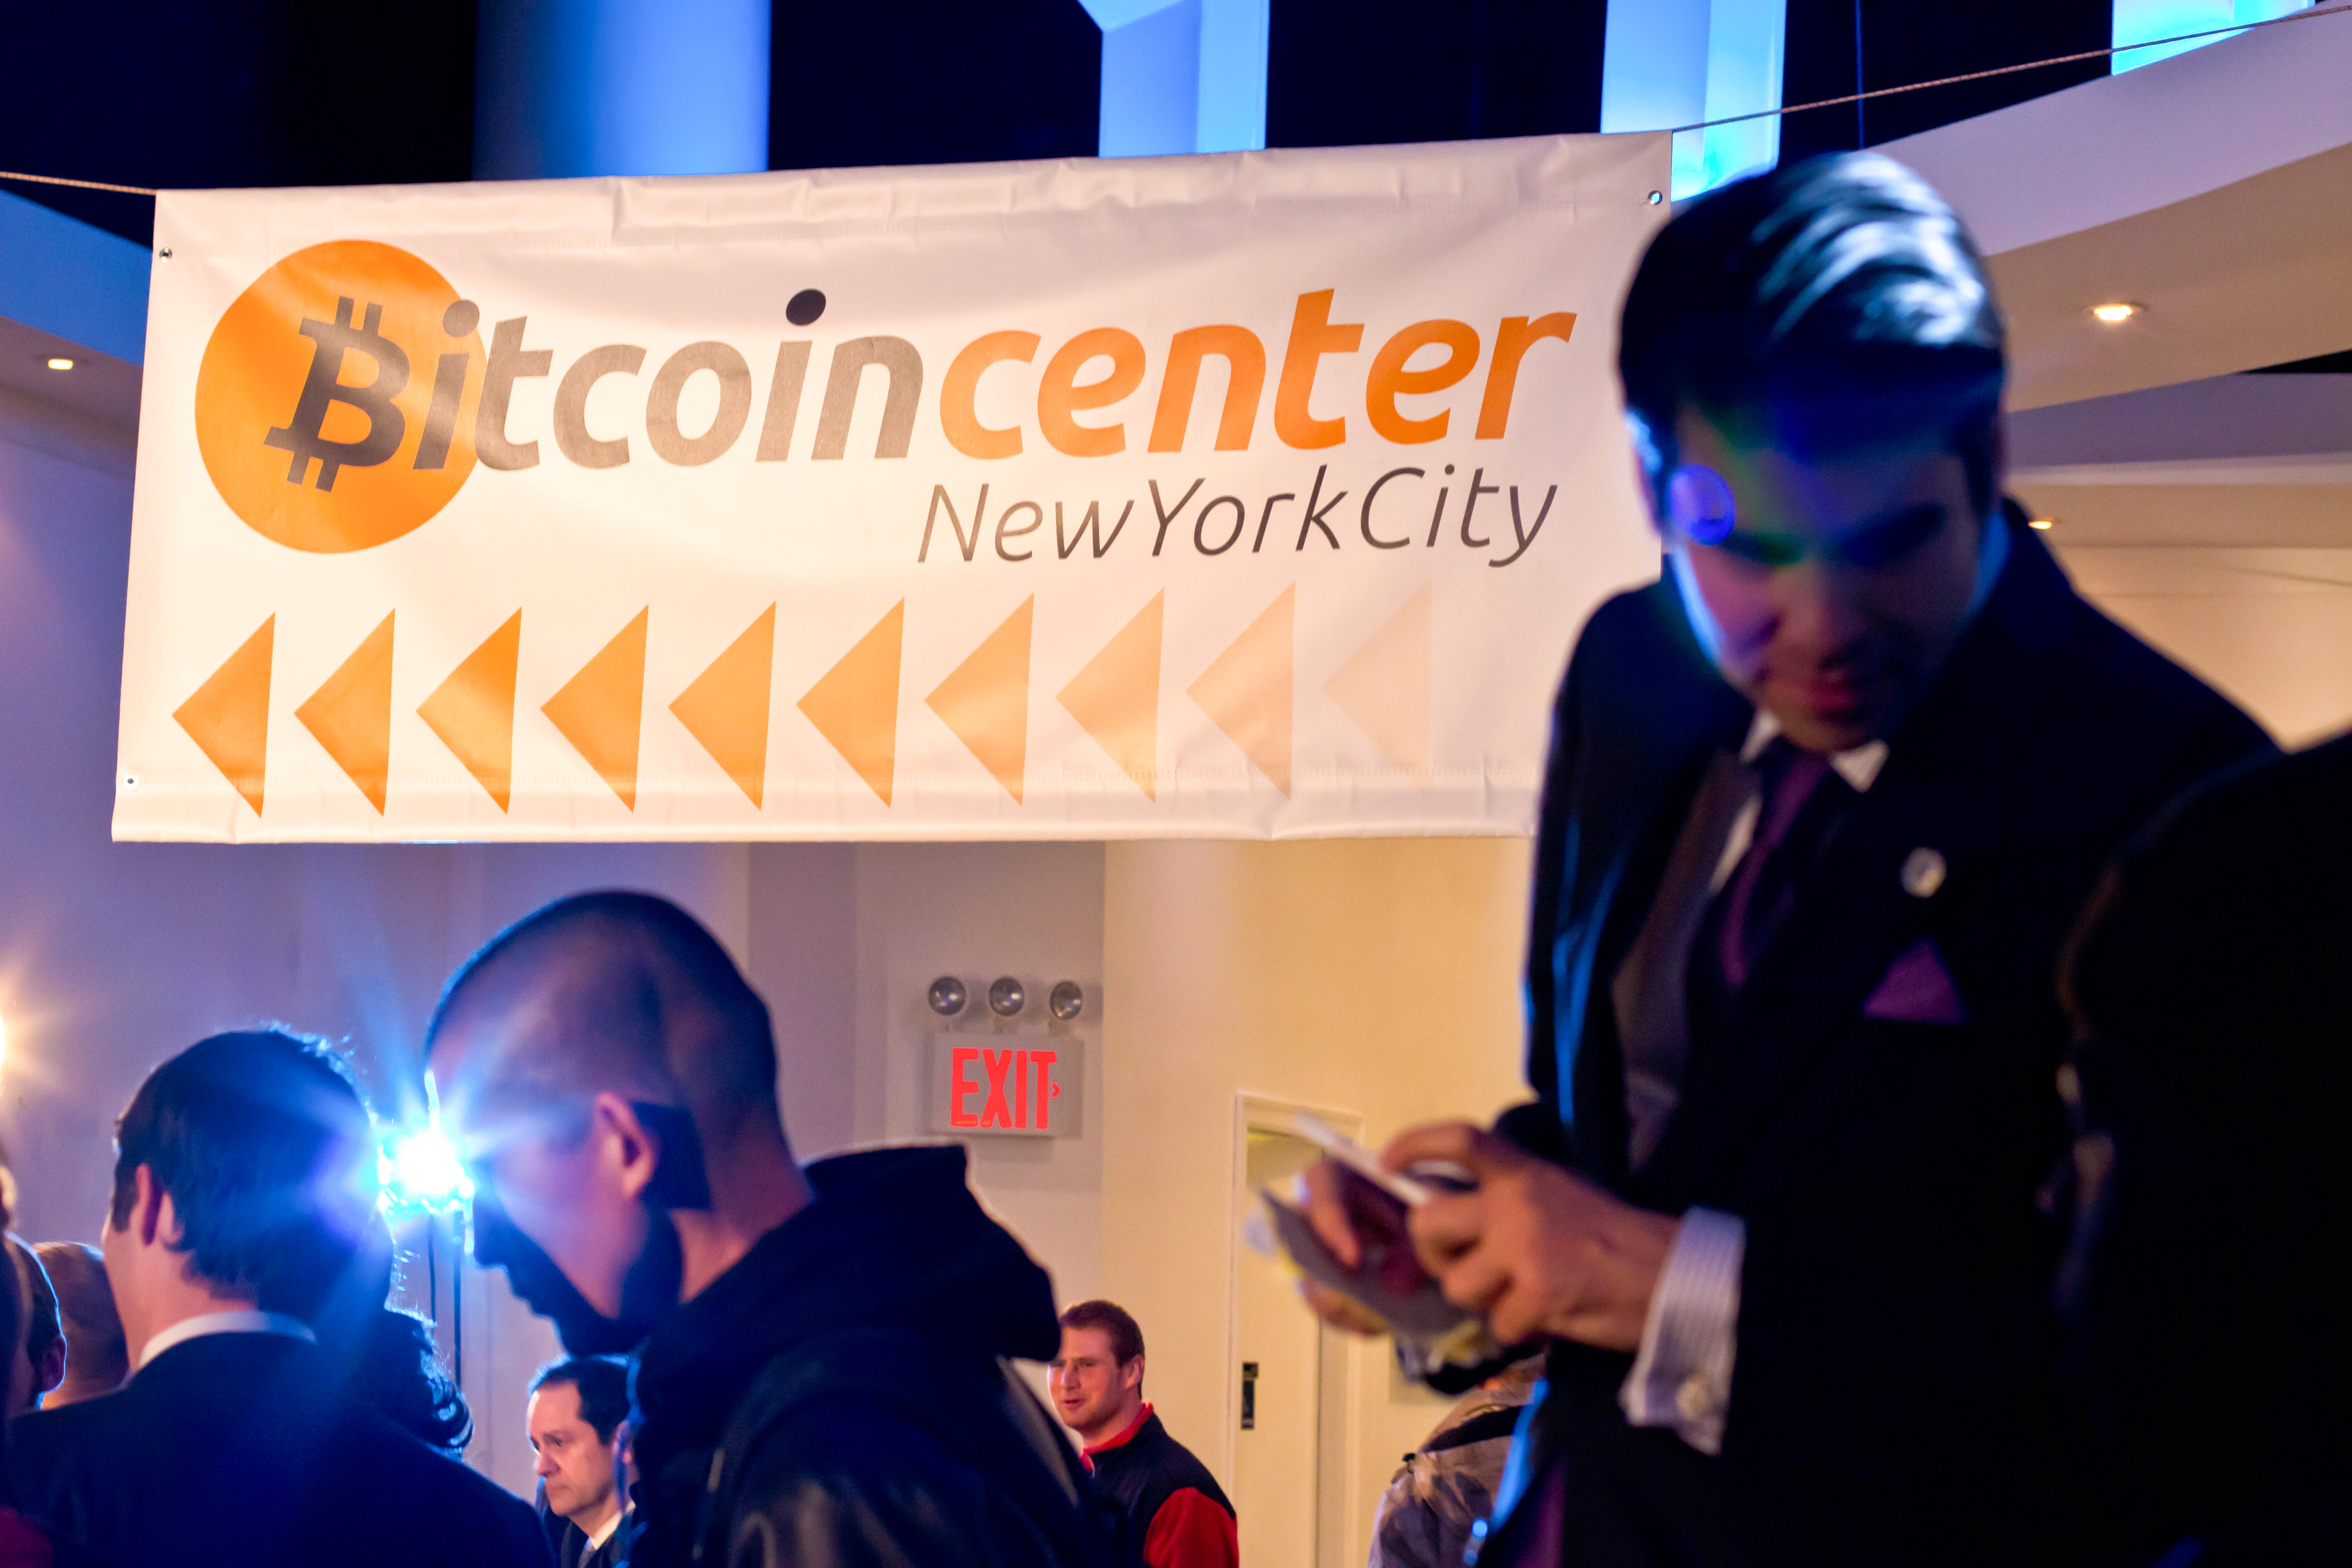 BTC Center NYC